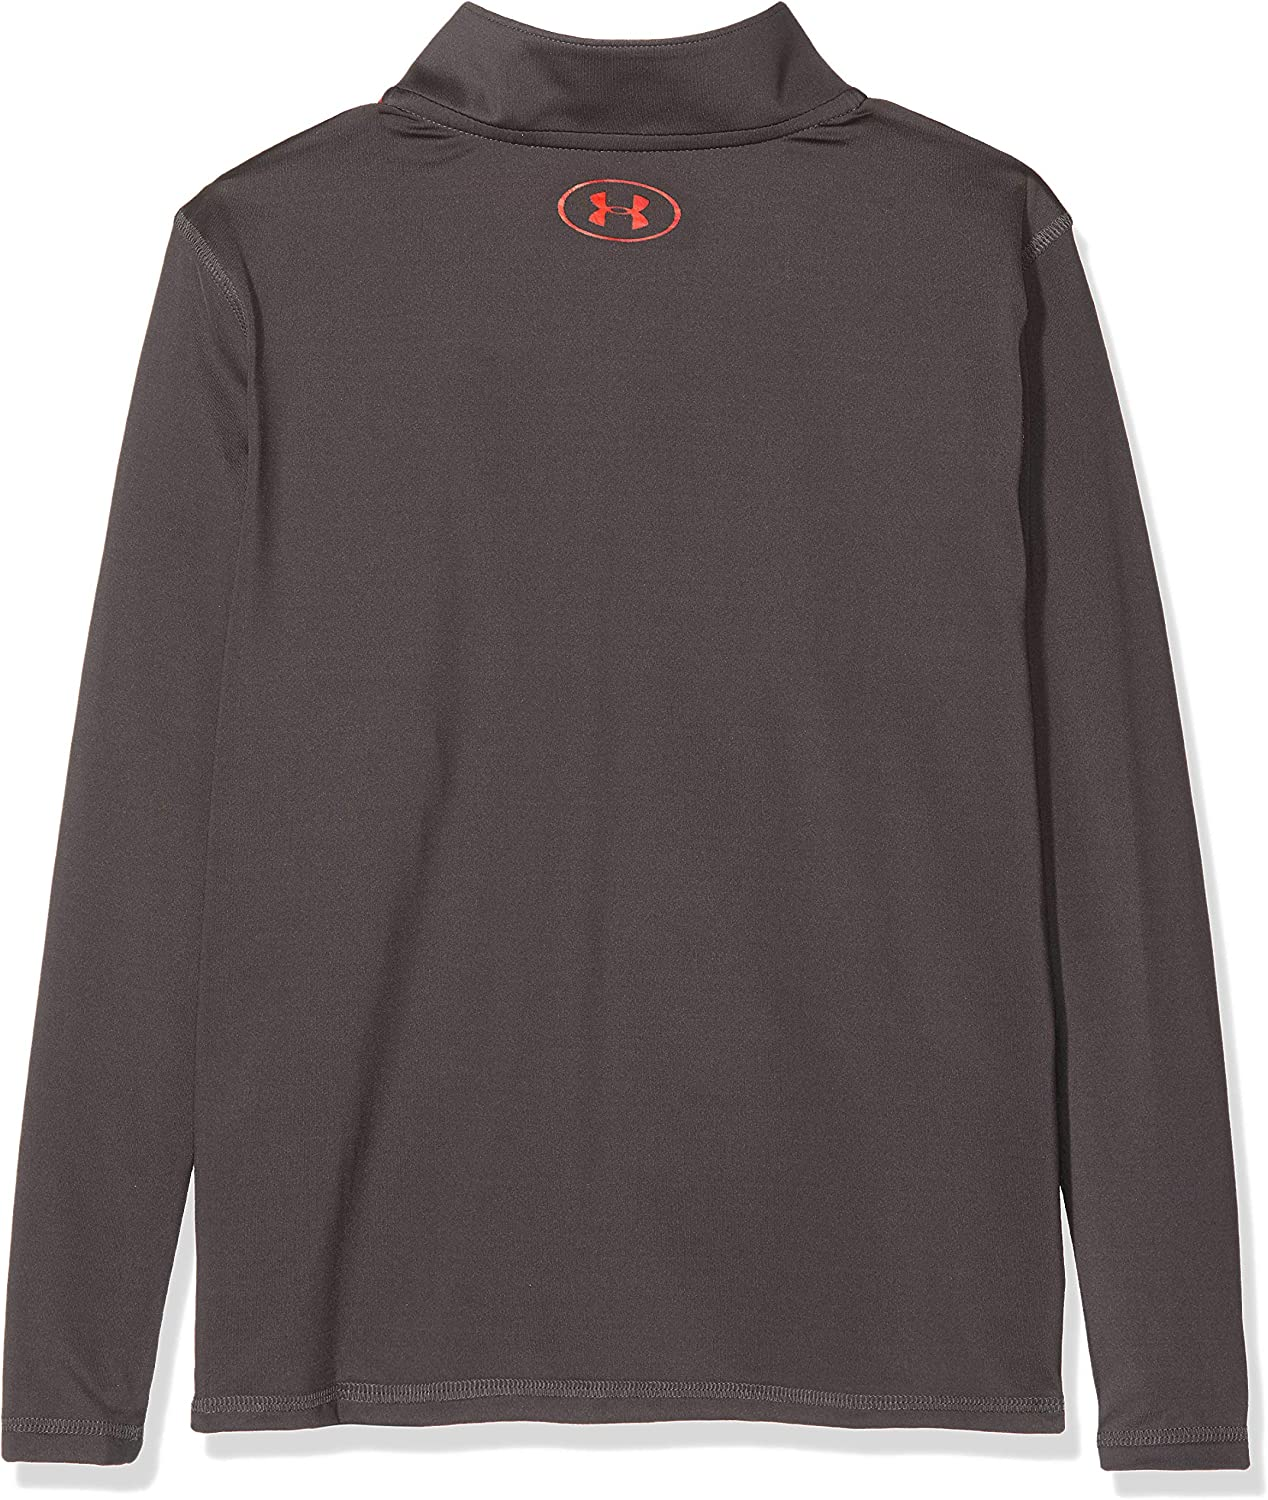 Charcoal//Radio Red Under Armour Raid 1//4 Zip Long-Sleeve Shirt Youth Large